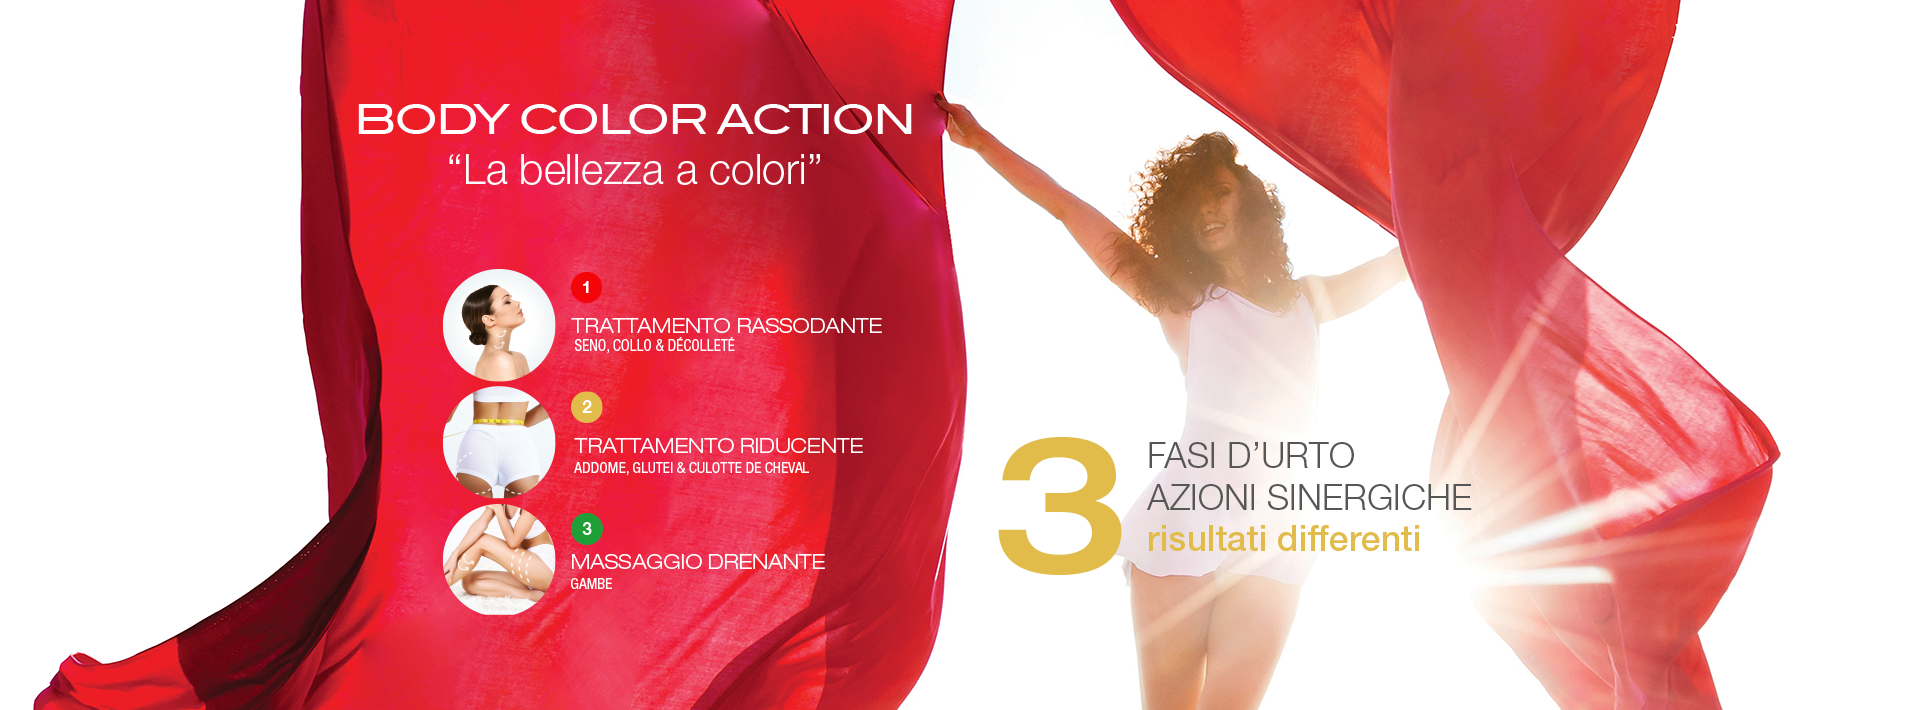 banner BODY COLOR ACTION